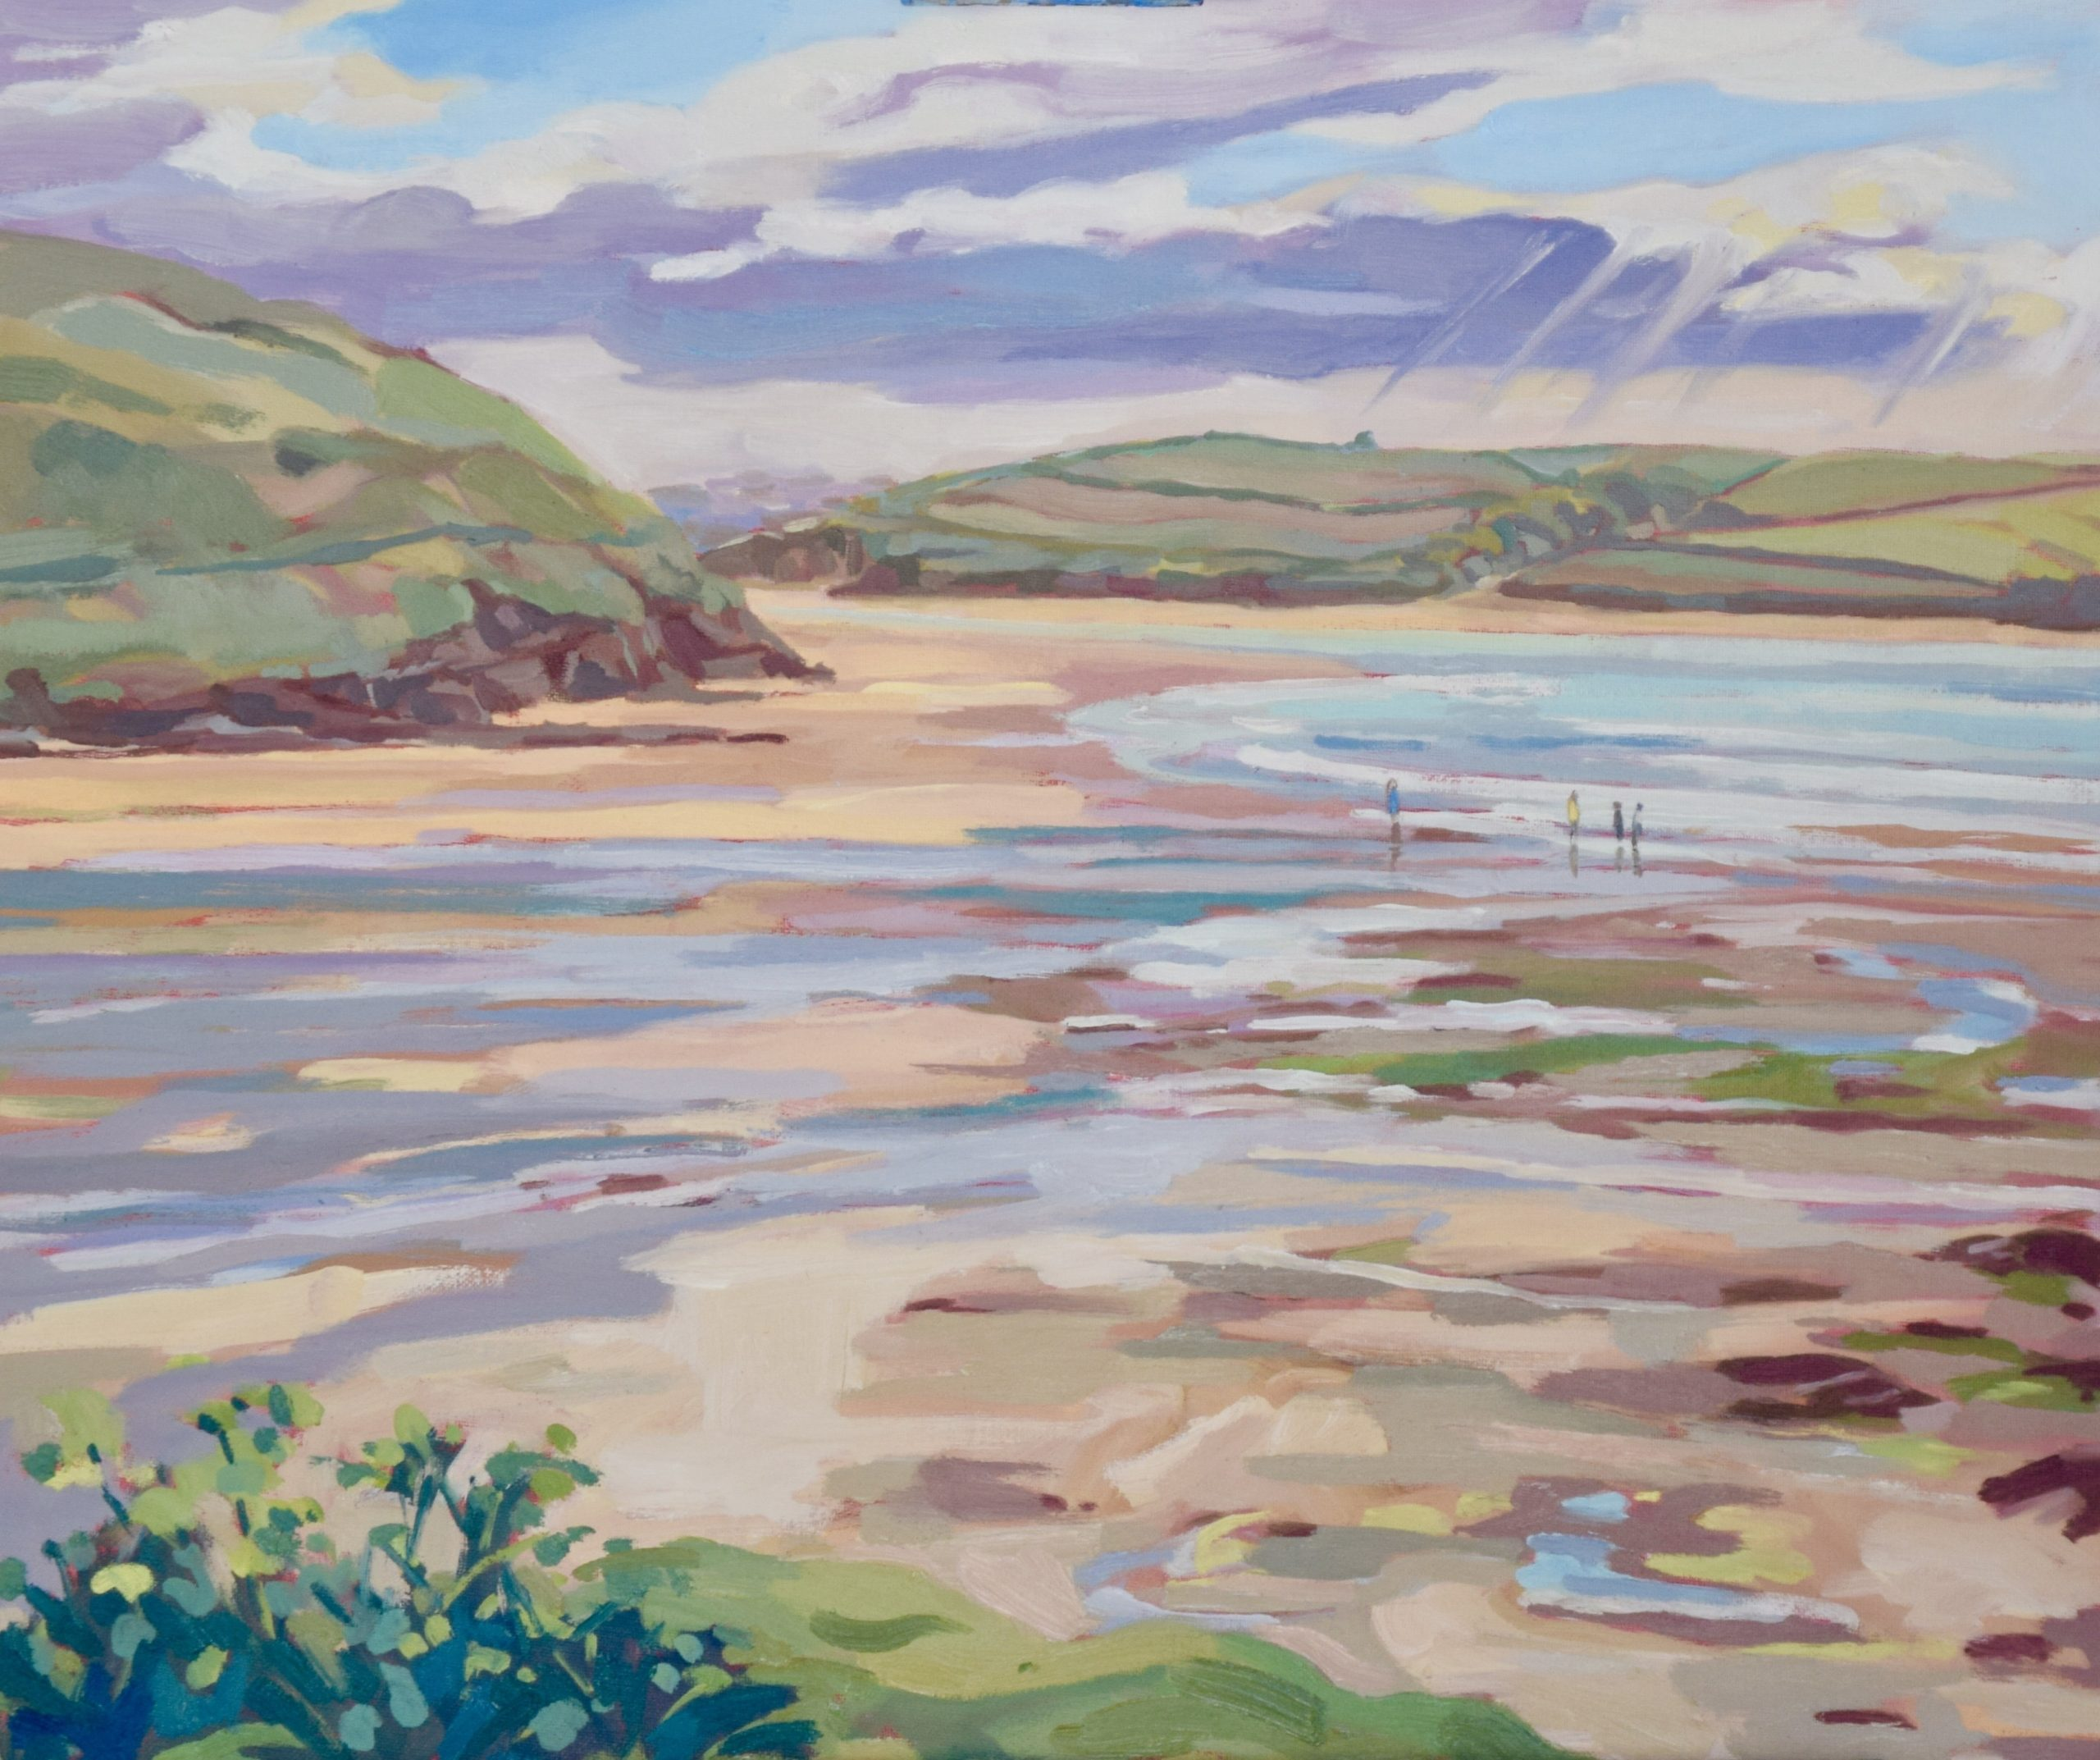 Annabel Playfair - Daymer Bay - Oil - 20 x 24 inches